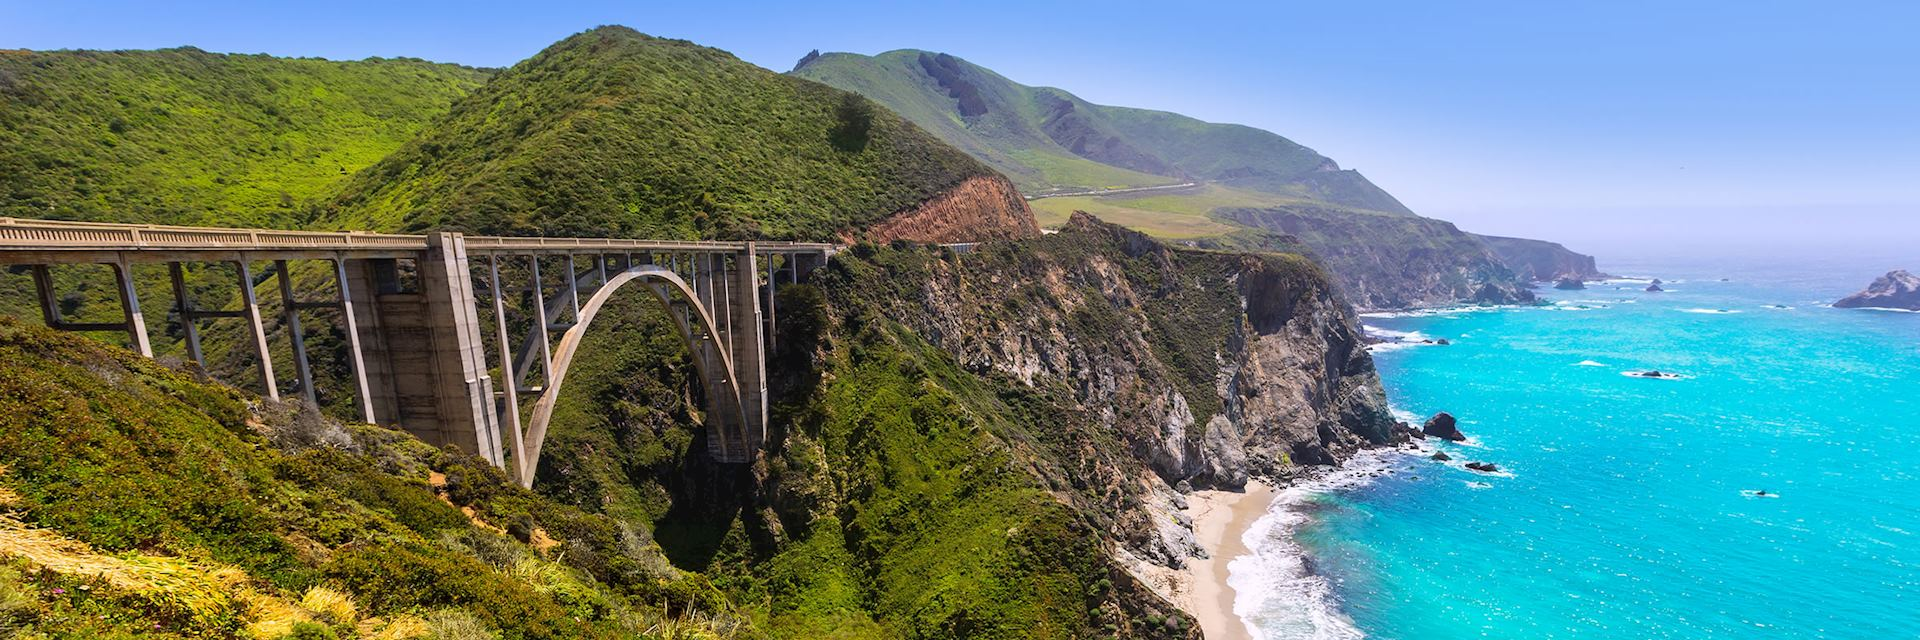 Bixby Bridge in Big Sur, Monterey, California